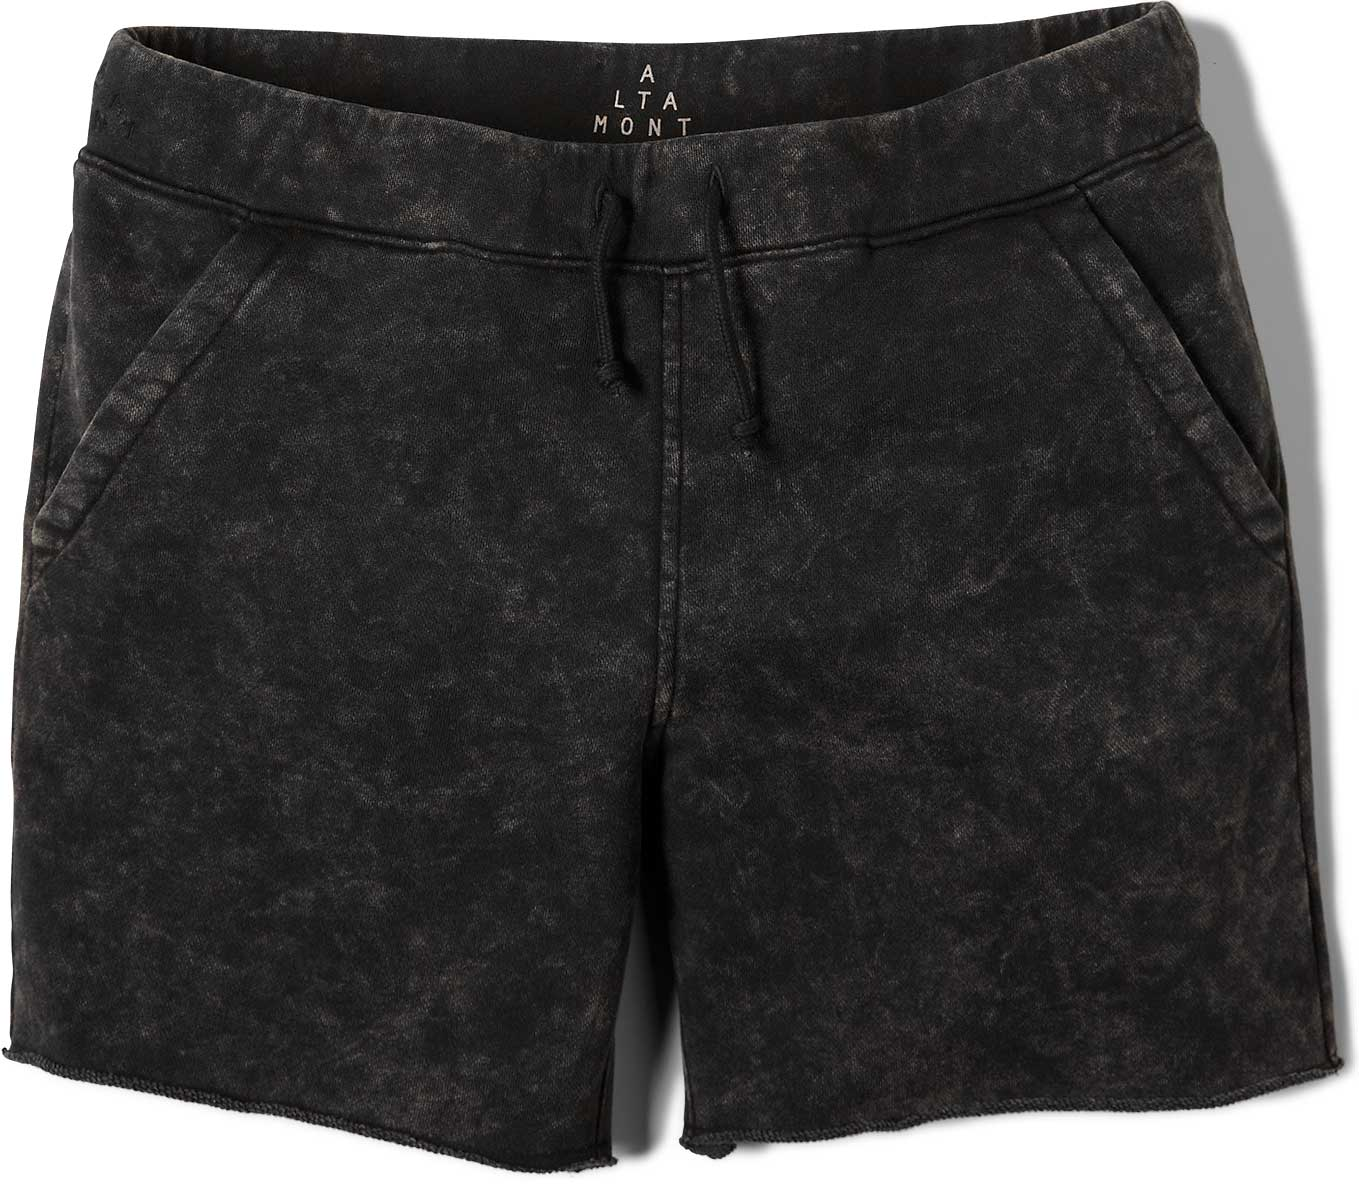 Altamont Shorts Vamo Fleece Black Grey Wash Skateboard Short By Andrew Reynolds